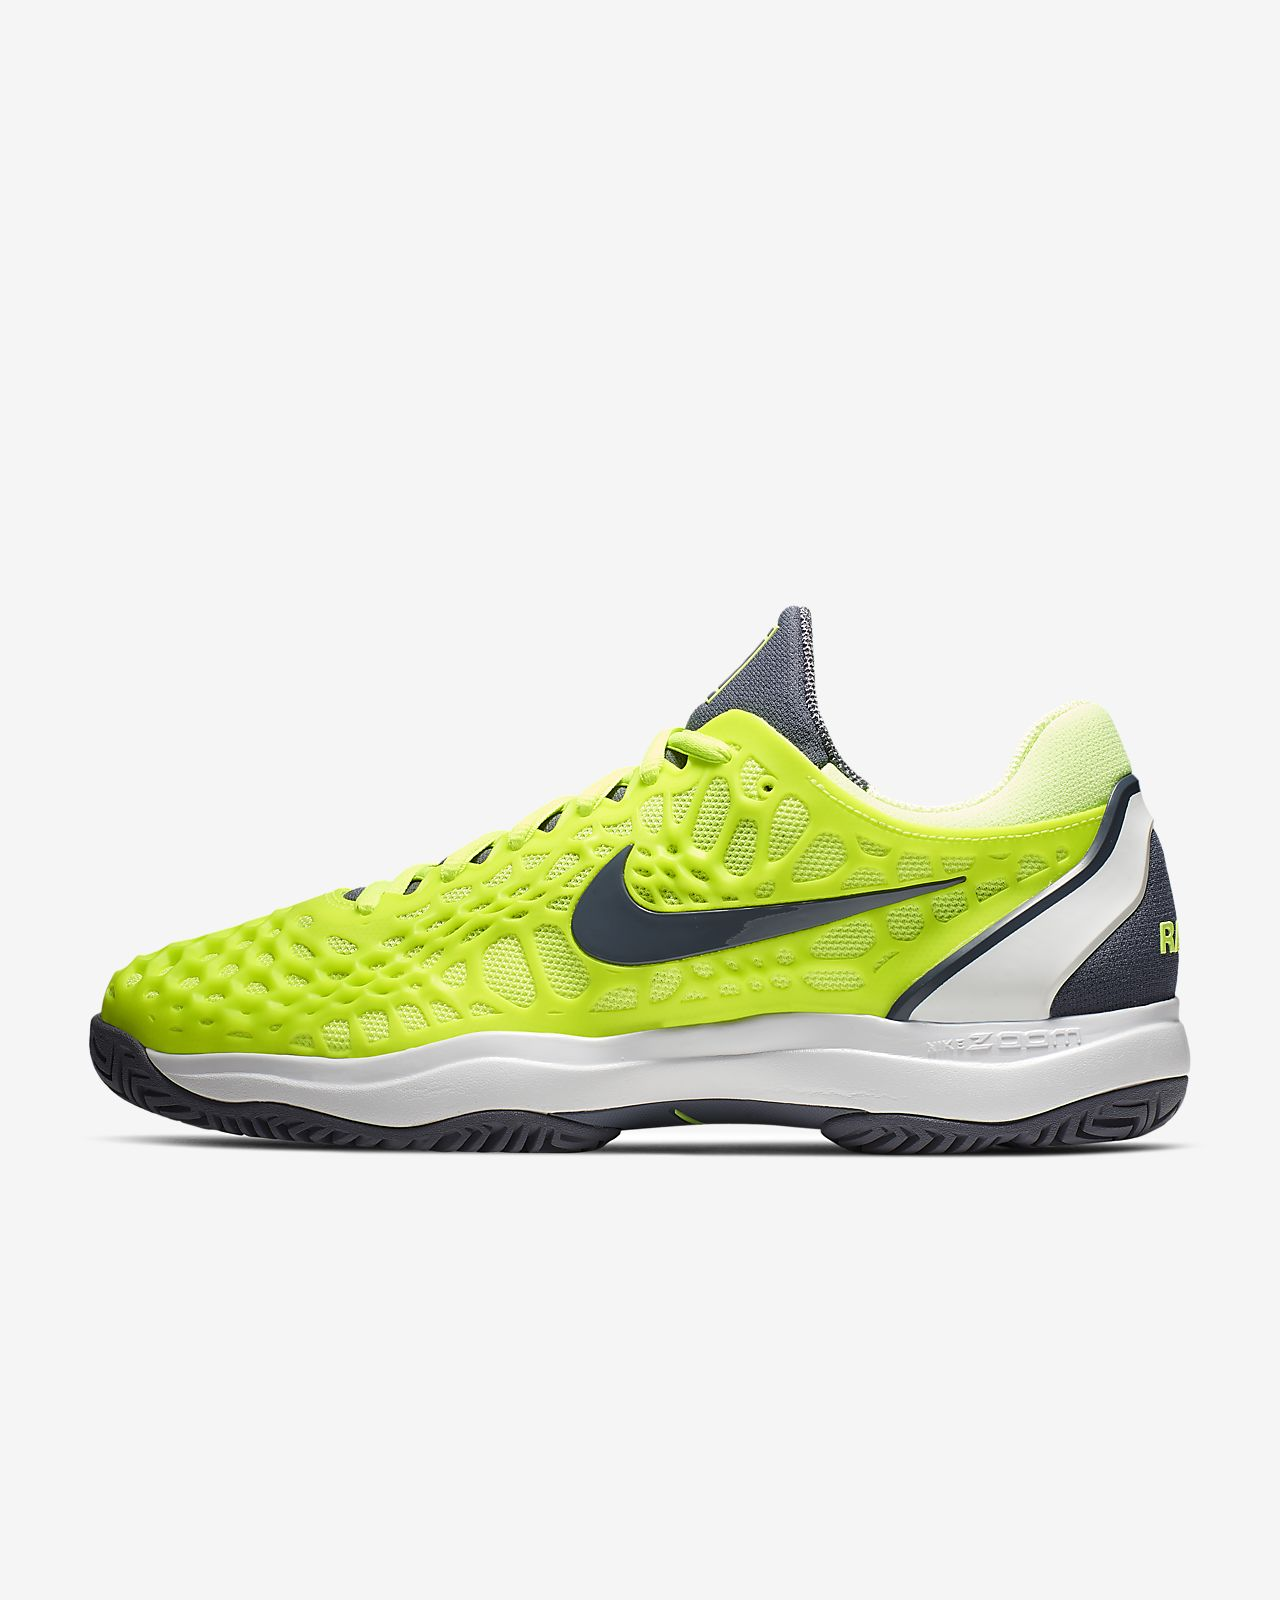 NikeCourt Zoom Cage 3 Men's Hard Court Tennis Shoe